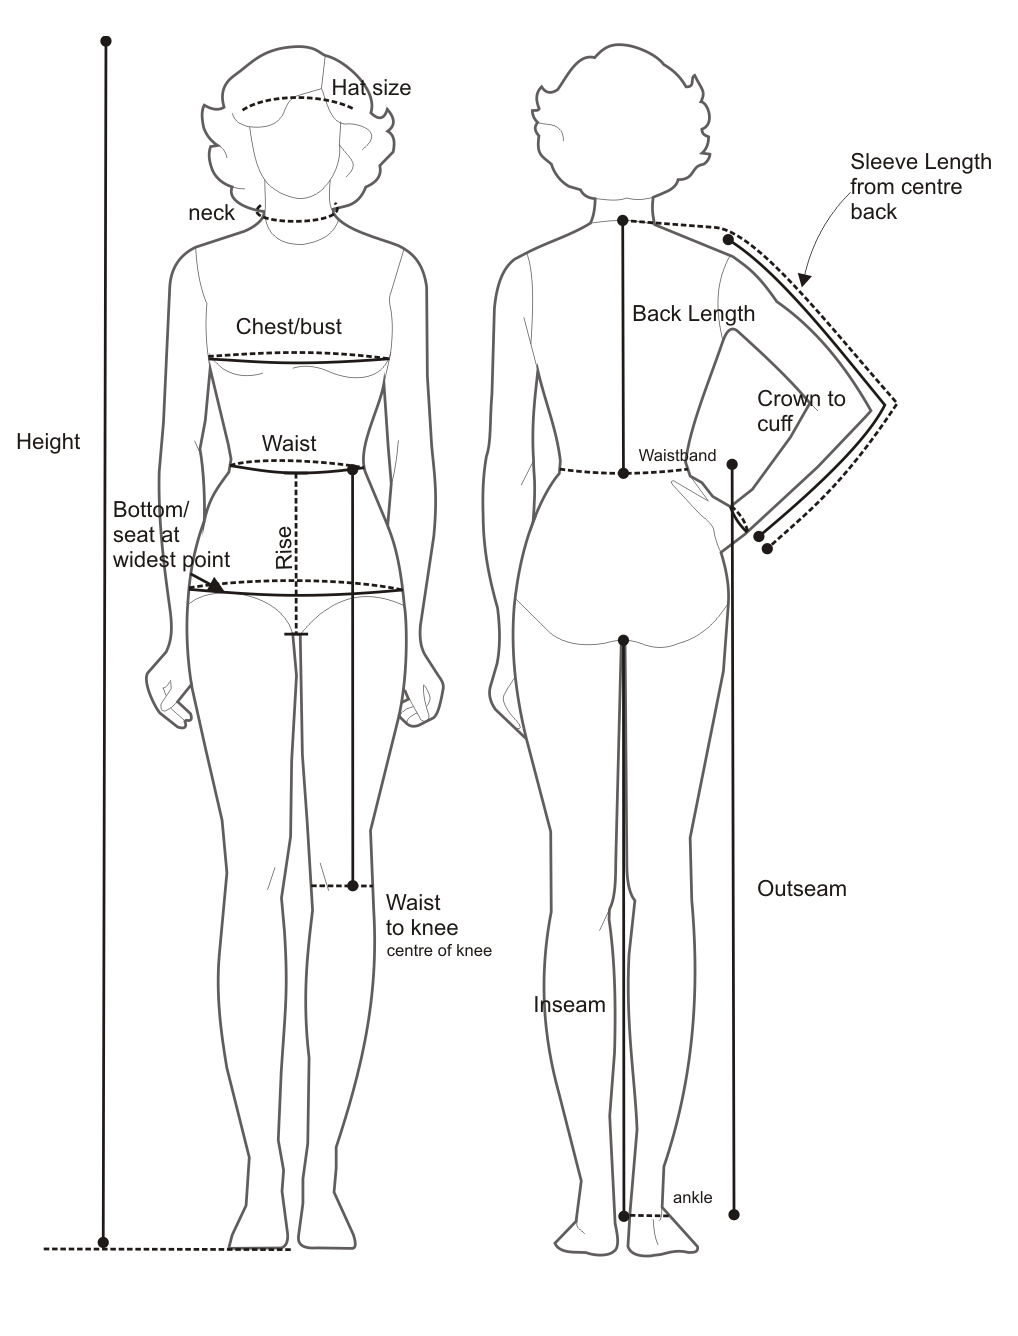 Diagram Of Female Body Measurements | Diagram